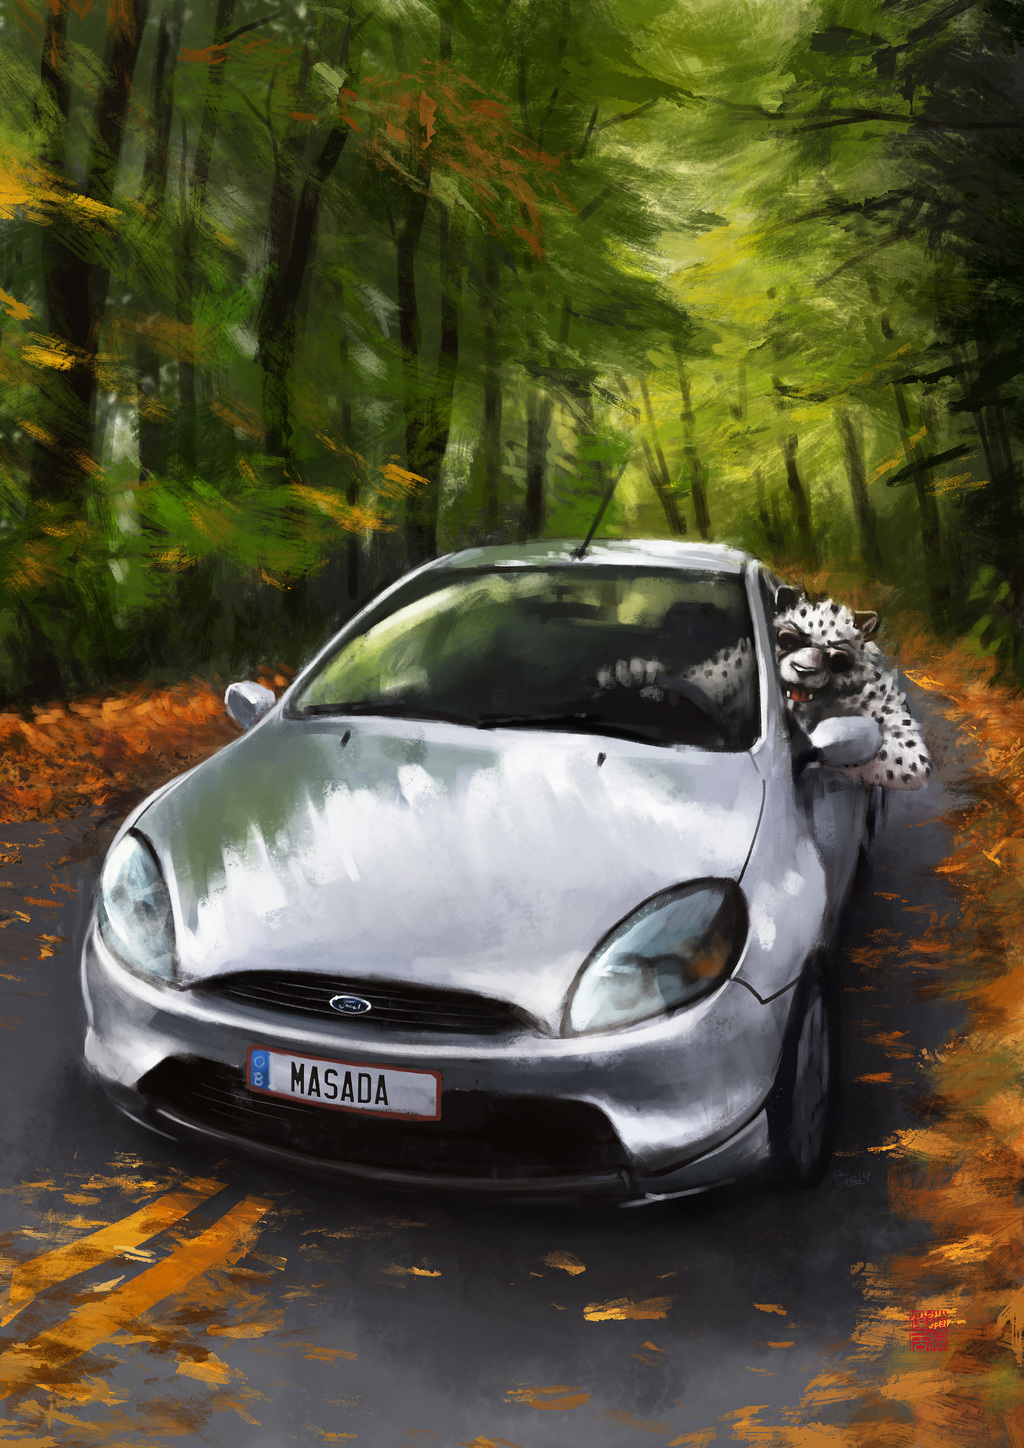 Most recent image: A cat and his car